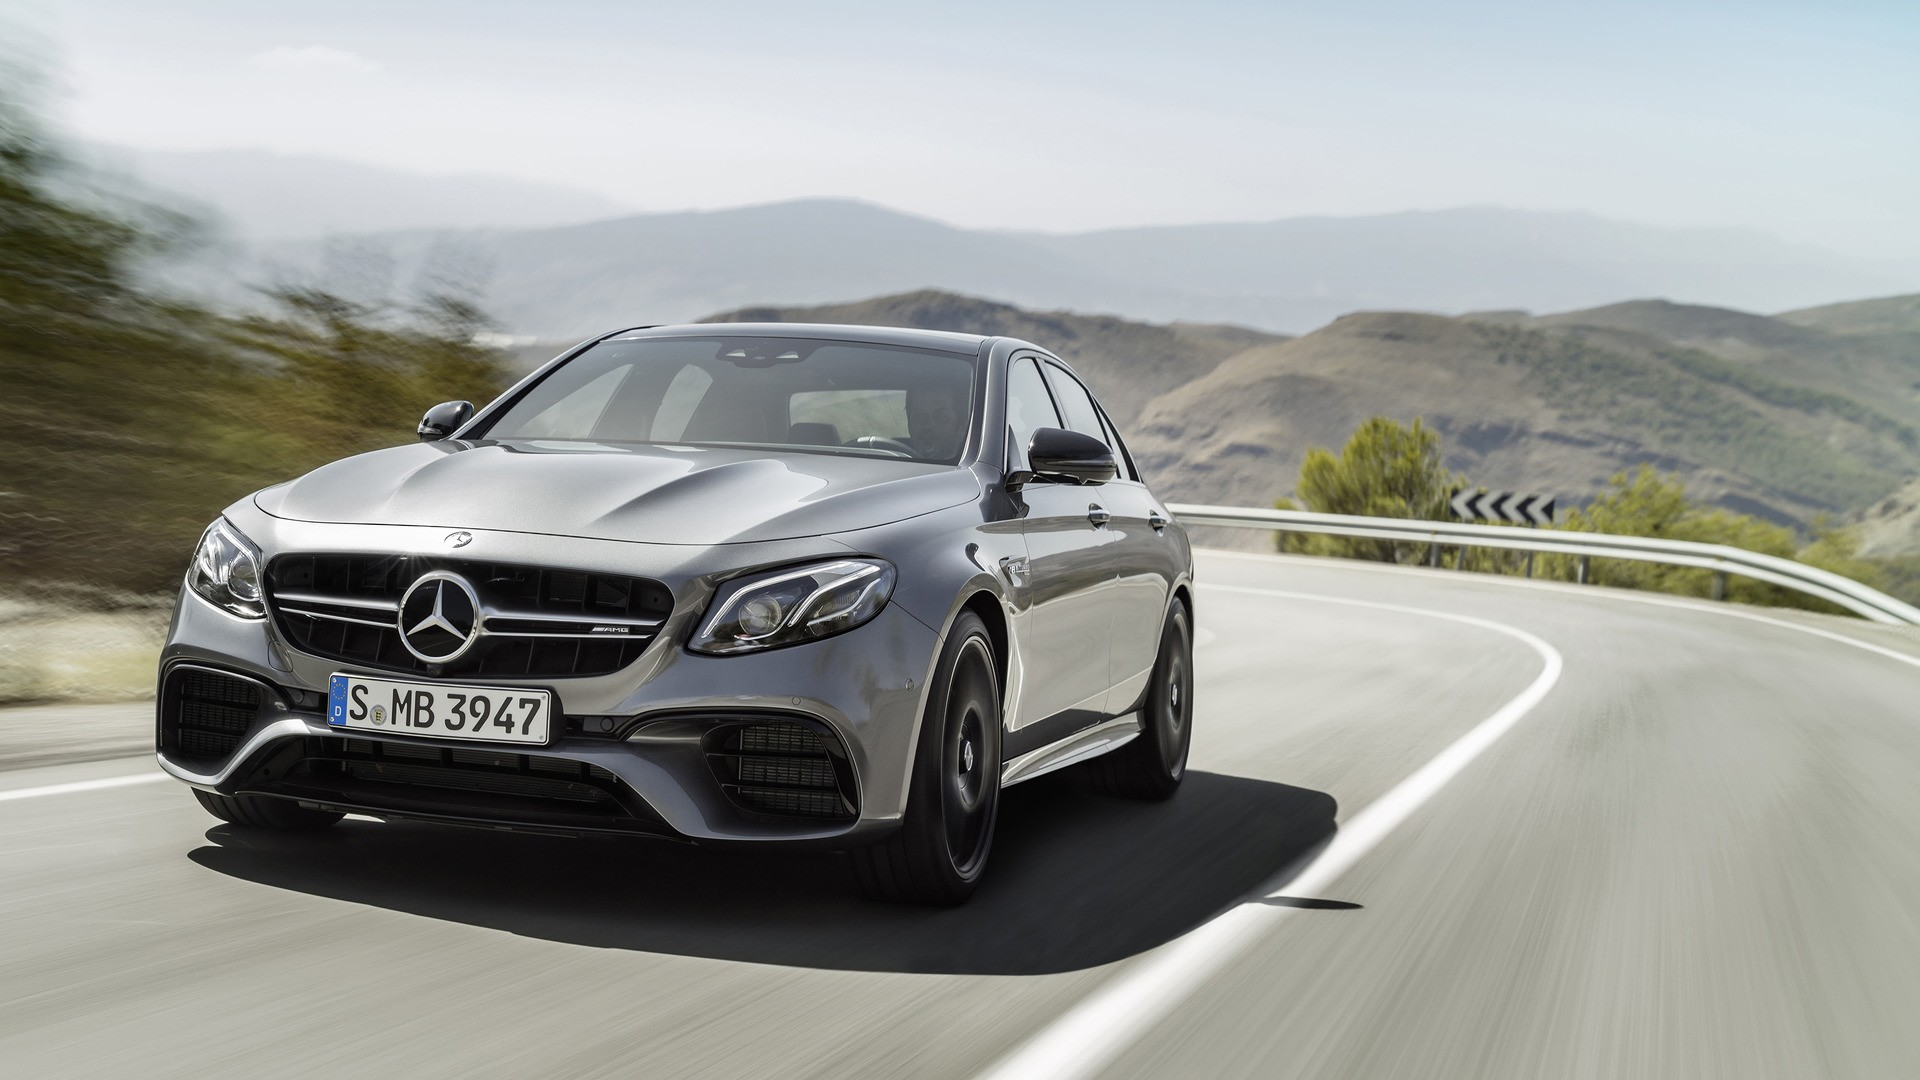 2018 mercedes amg e63 boasts amg performance 4matic awd drift mode lots of hp autoevolution. Black Bedroom Furniture Sets. Home Design Ideas